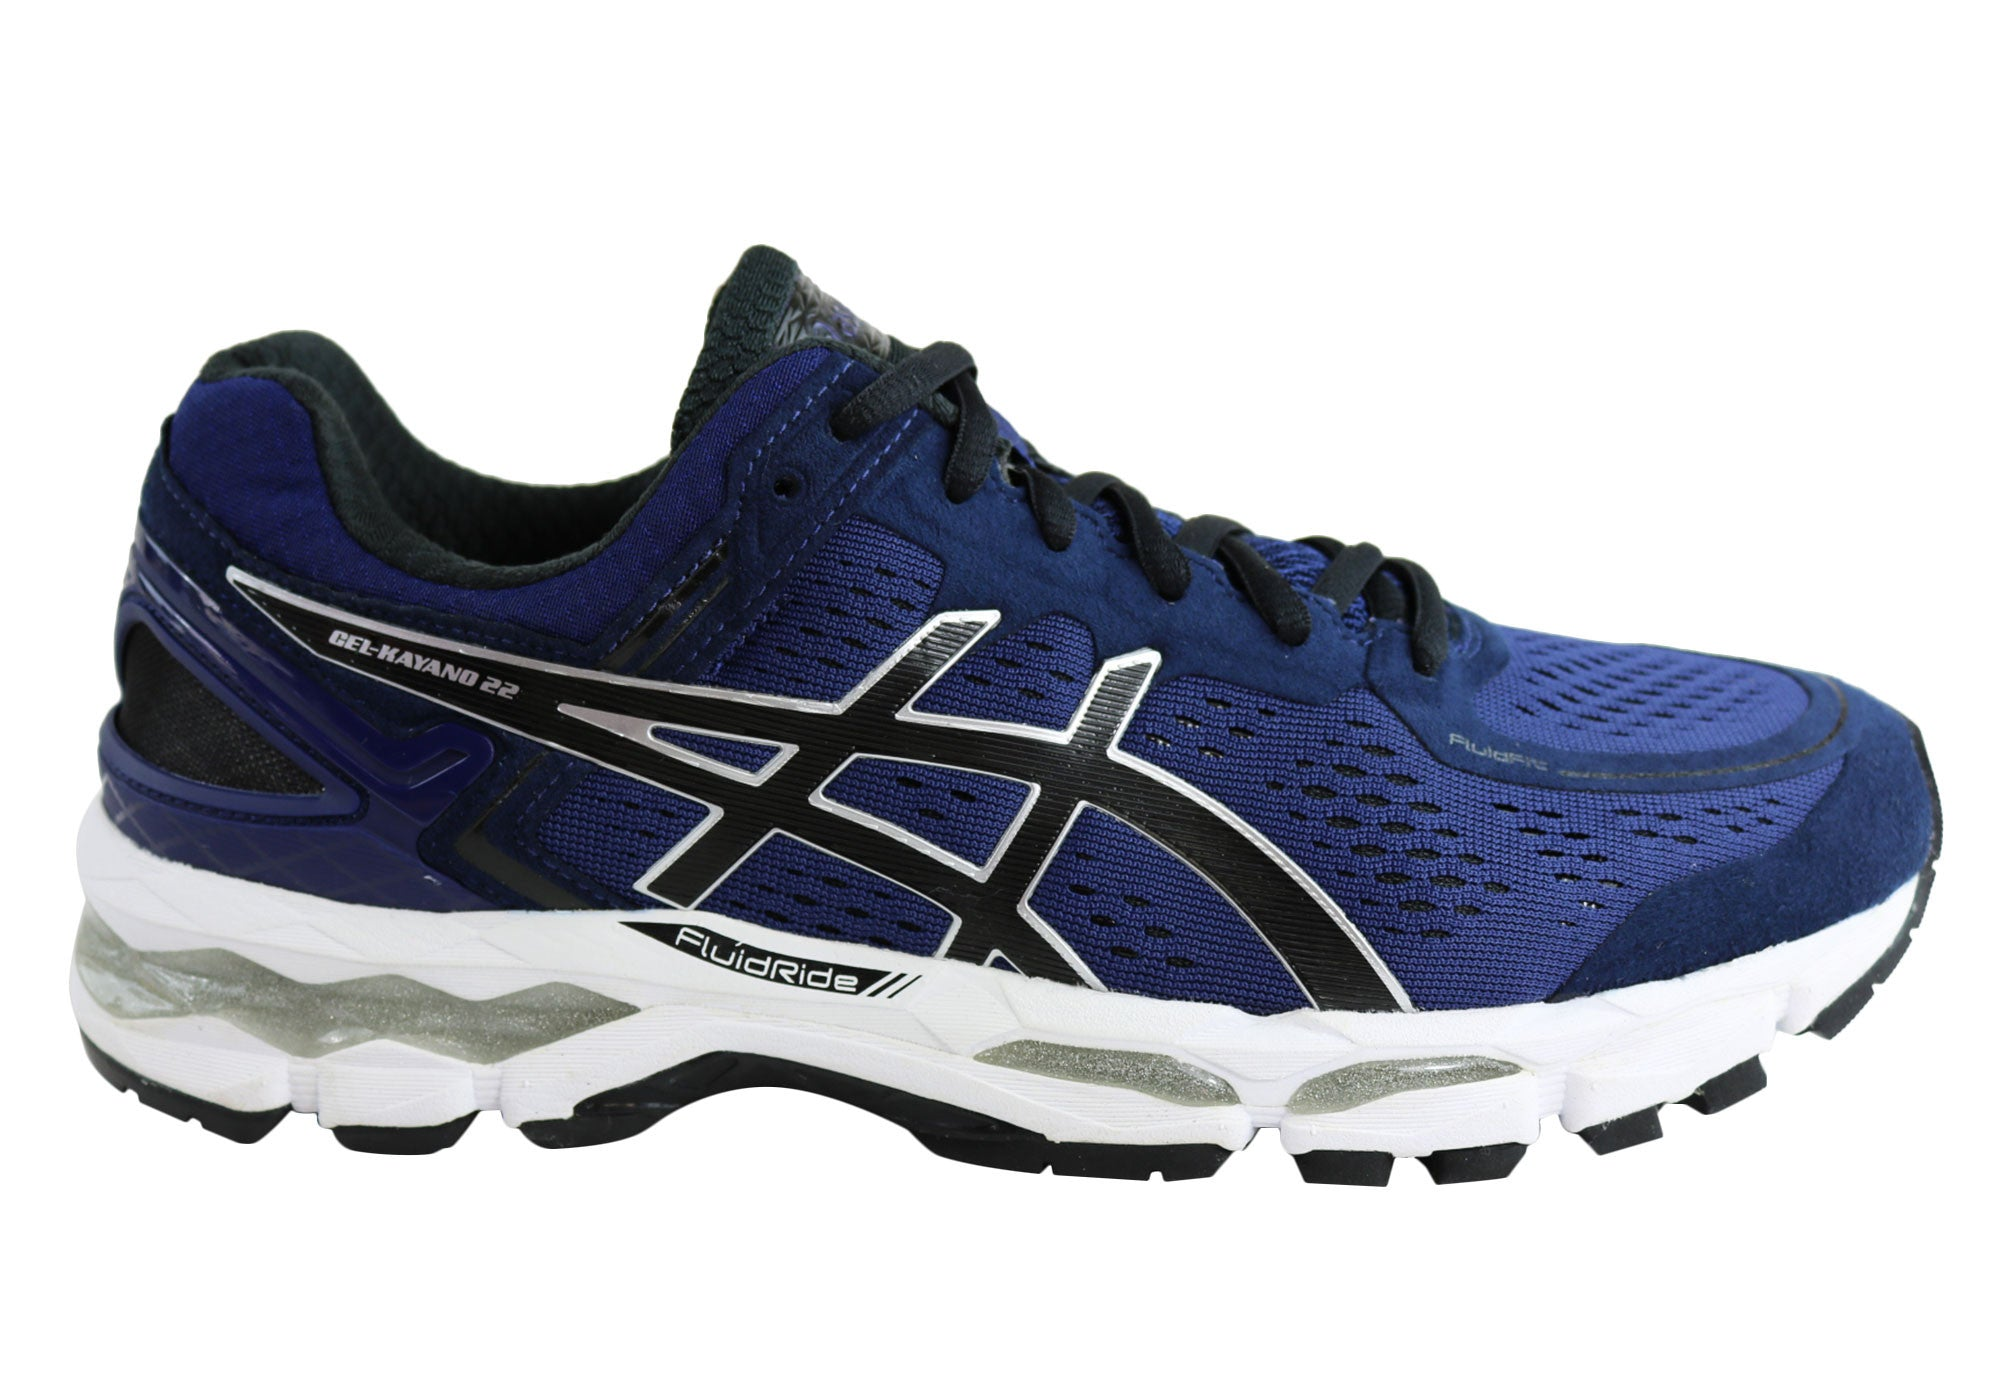 online store 6de16 2744e Home Asics Gel-Kayano 22 Mens Premium Cushioned Running Sport Shoes.  Charcoal Lime  Silver True Blue  Mediterranean Black Silver ...